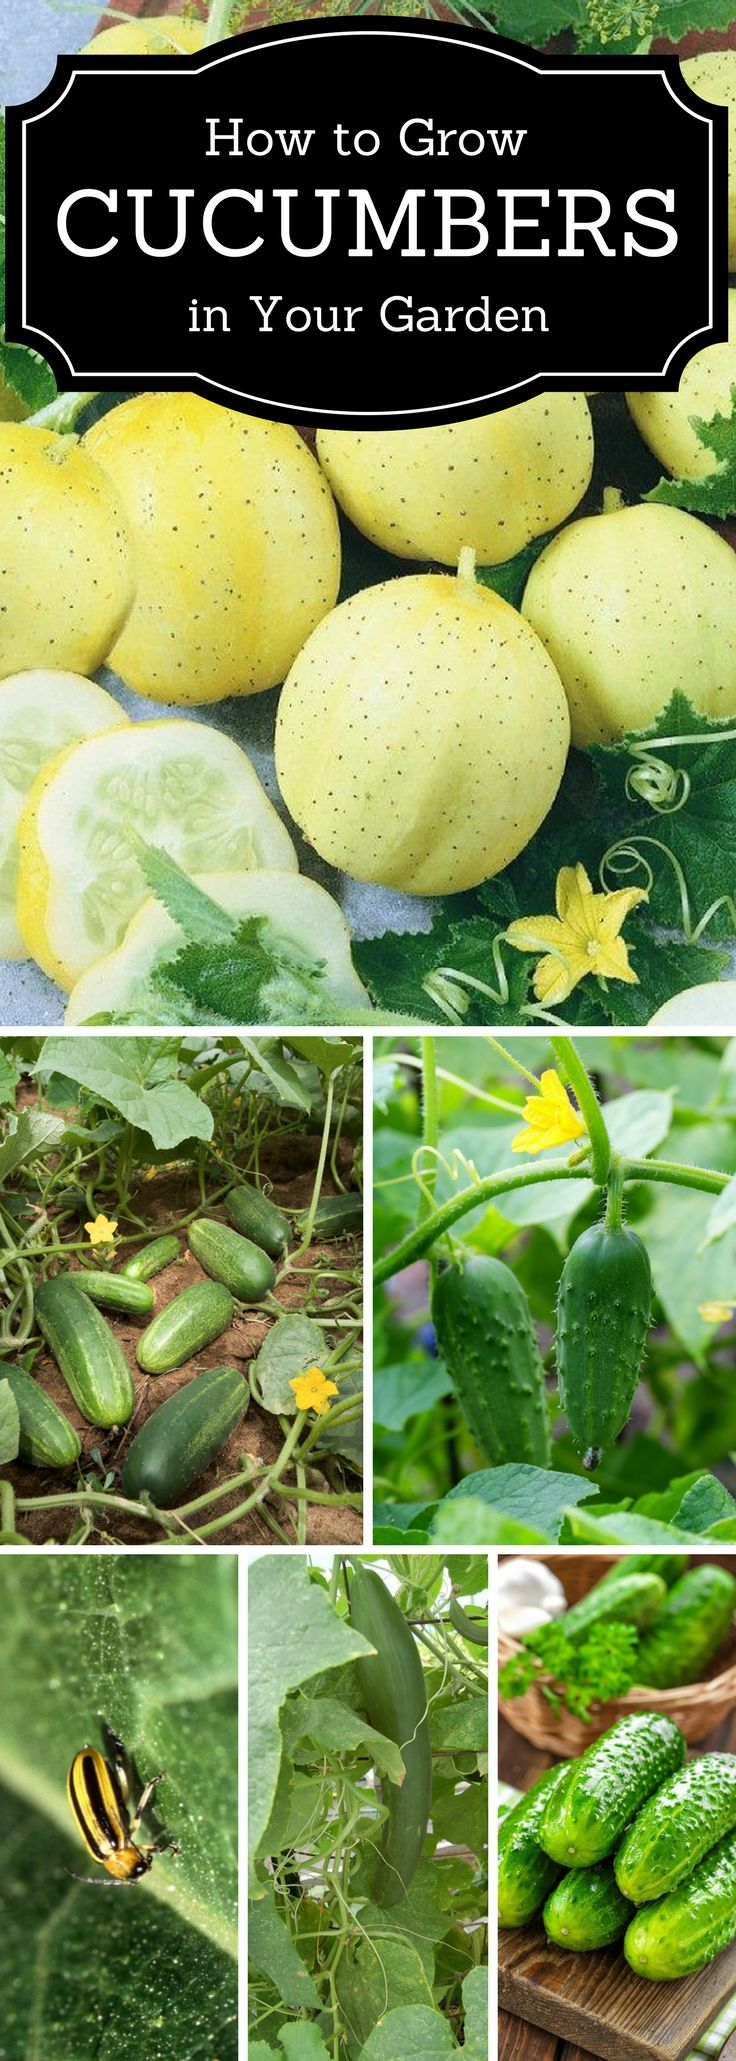 Top 10 Tips on Growing Cucumbers in The Home Garden – Share Today's Craft and DIY Ideas